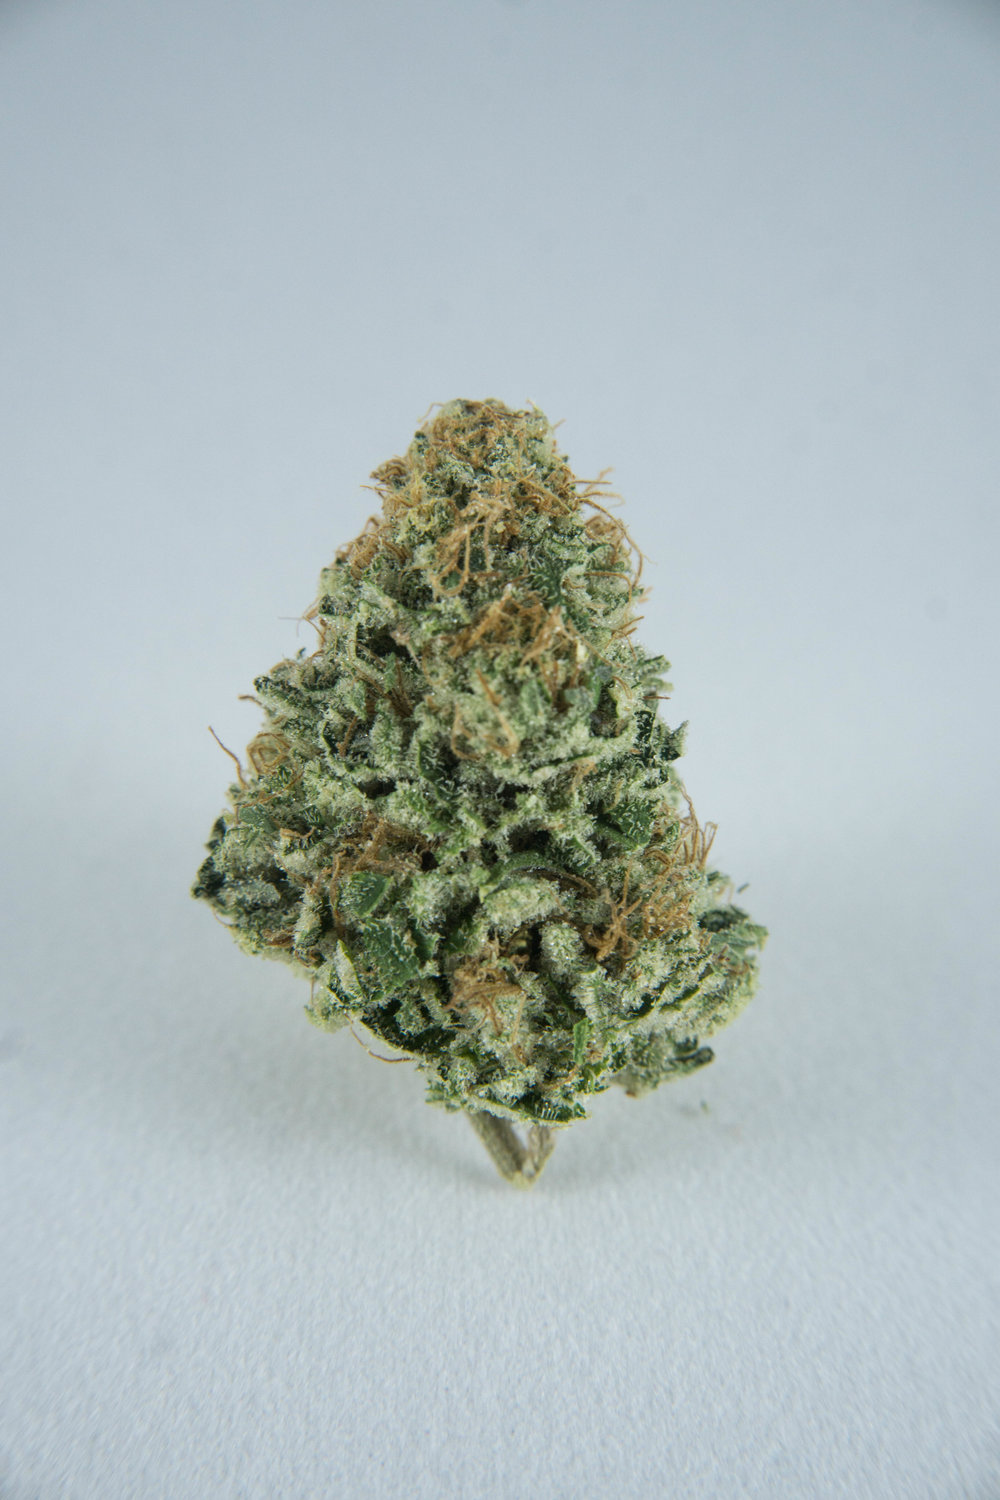 Hybrid (Sativa dominant) Musky blueberries with slightly spicy undertones. A mild Sativa dominant strain that will keep you energized throughout your daily chores. Great all day smoker!